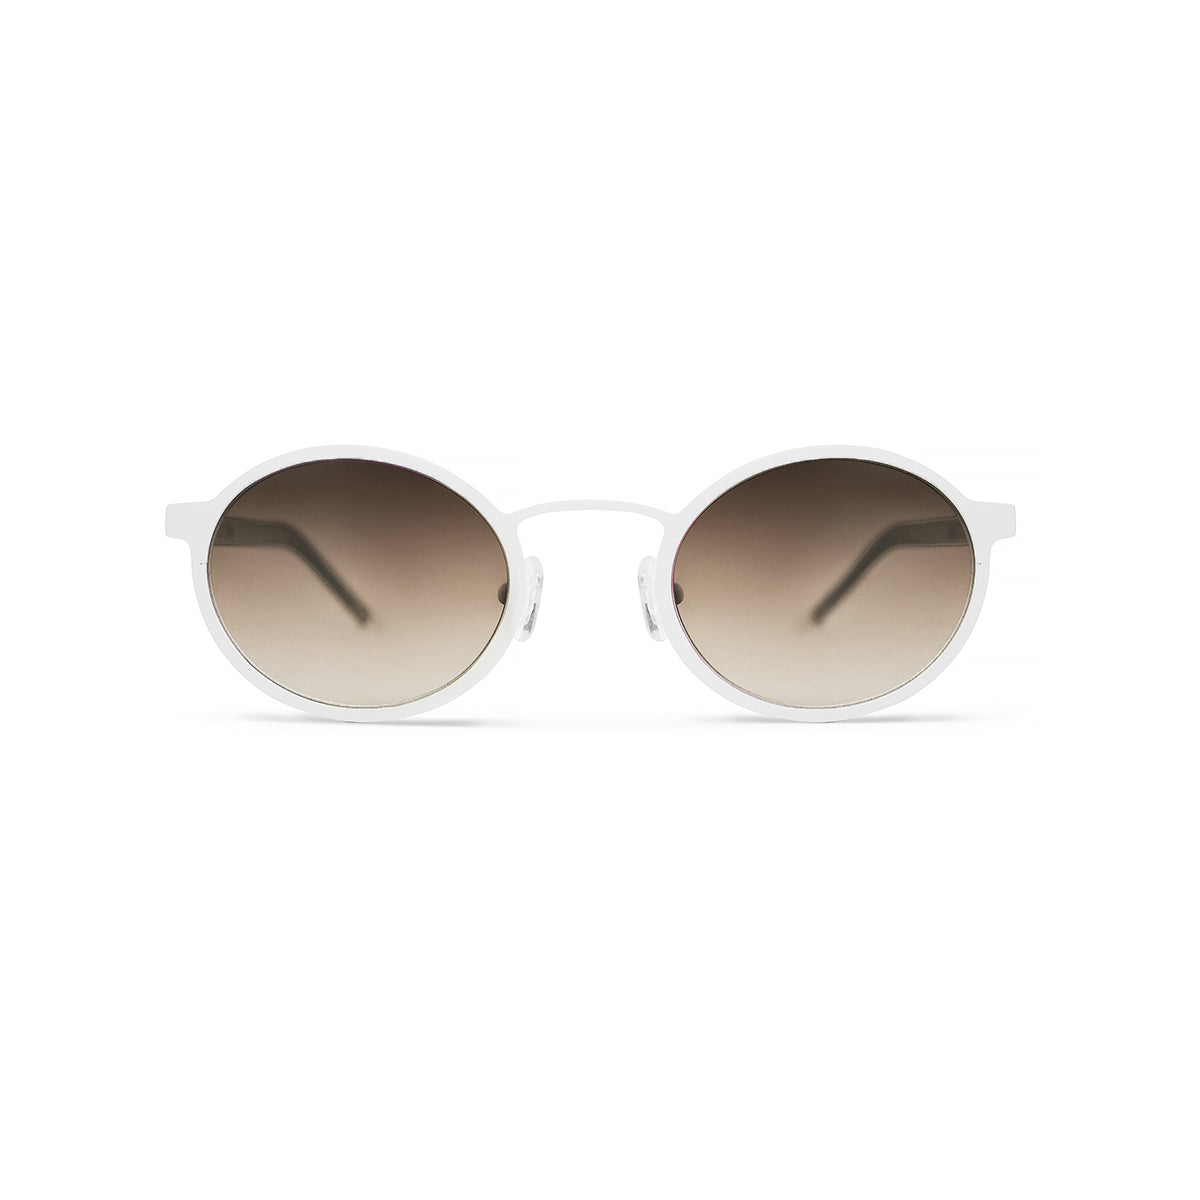 Metal. Porcelain. Amber Lens. - BLYSZAK eyewear eyewear - eyewear, optical, sunglasses